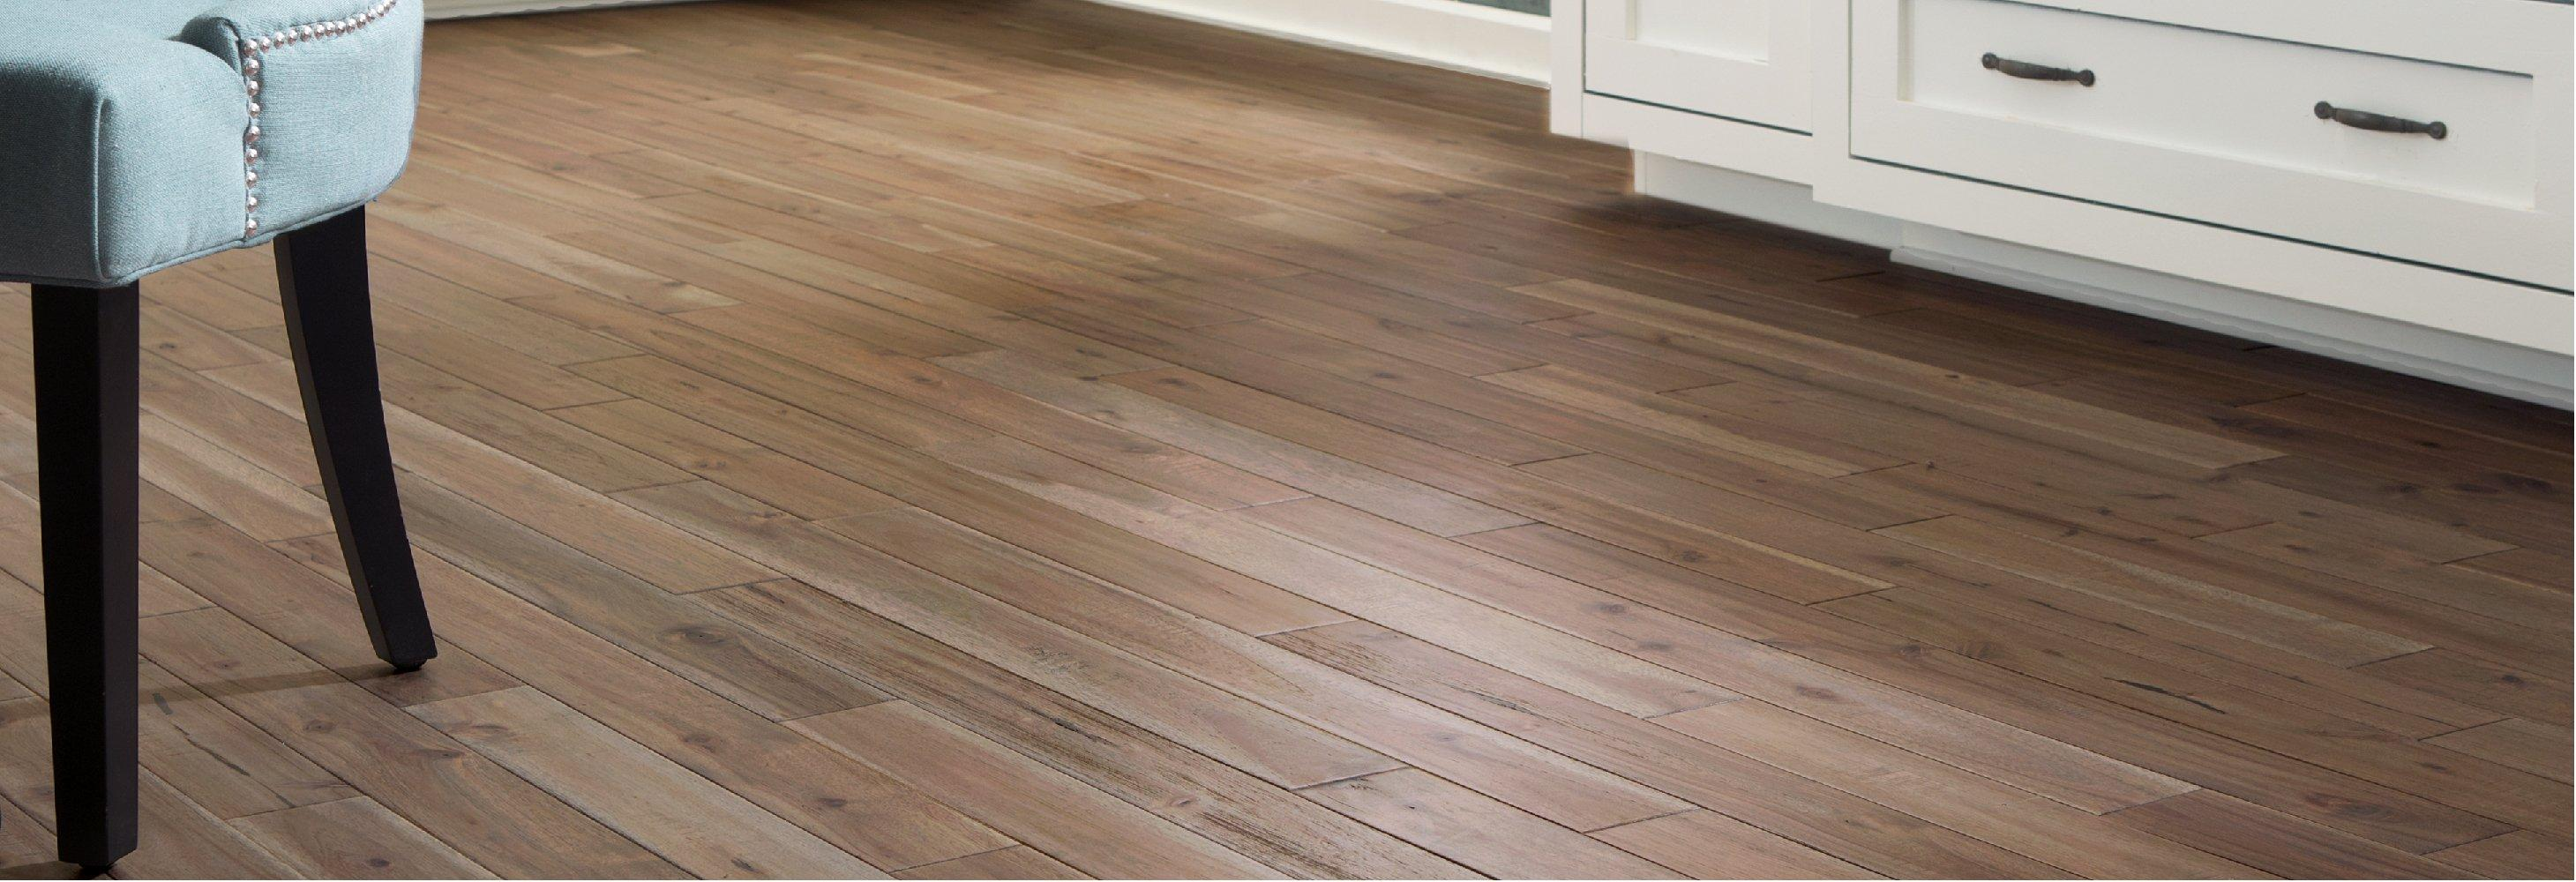 solid wood flooring solid hardwood flooring KHHHDLV